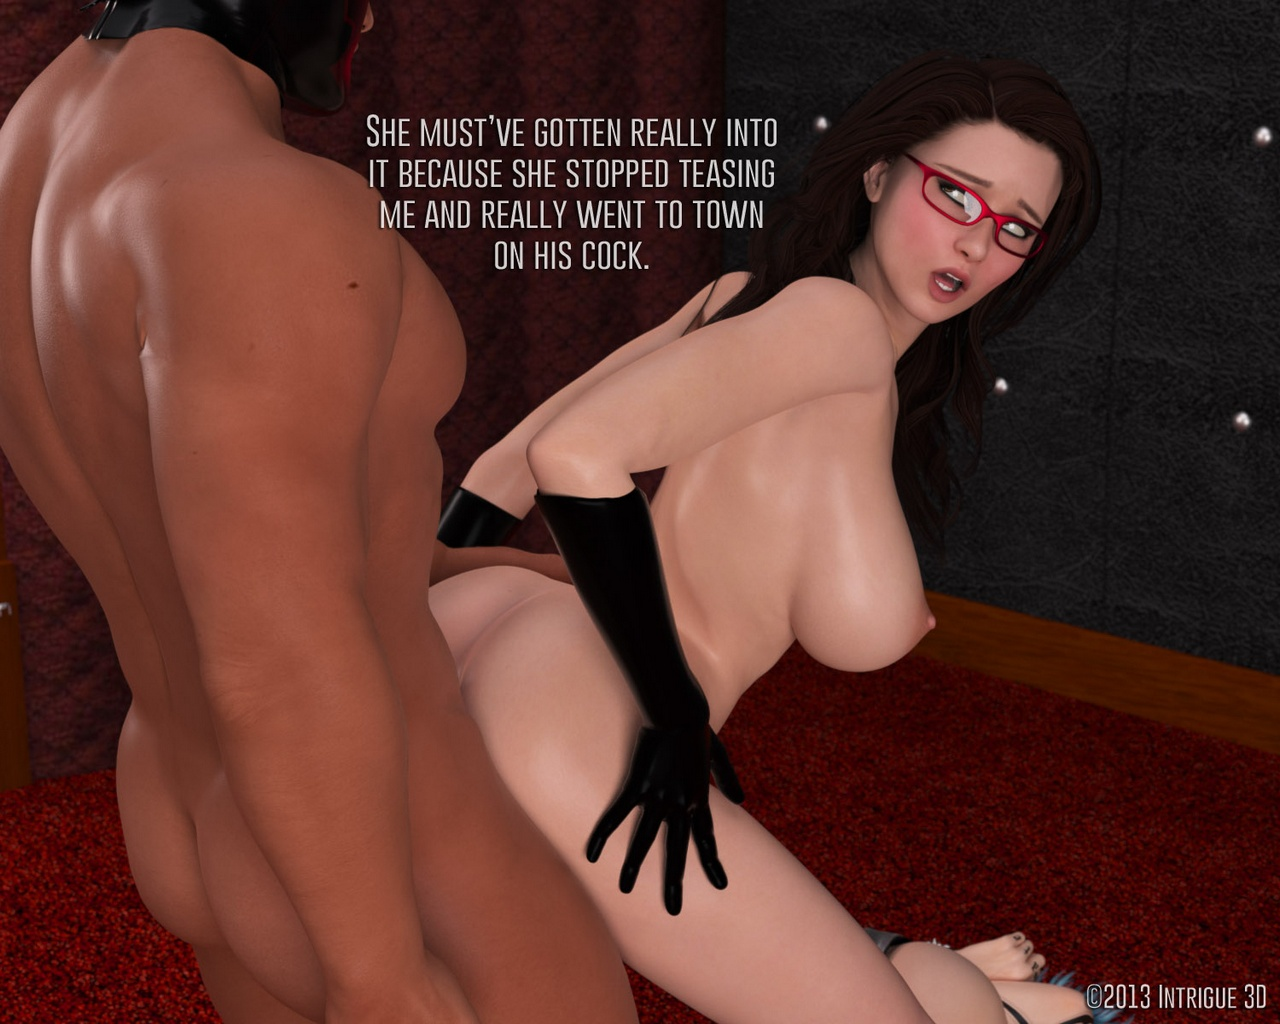 Zoey Gets Fucked (Over) - part 3